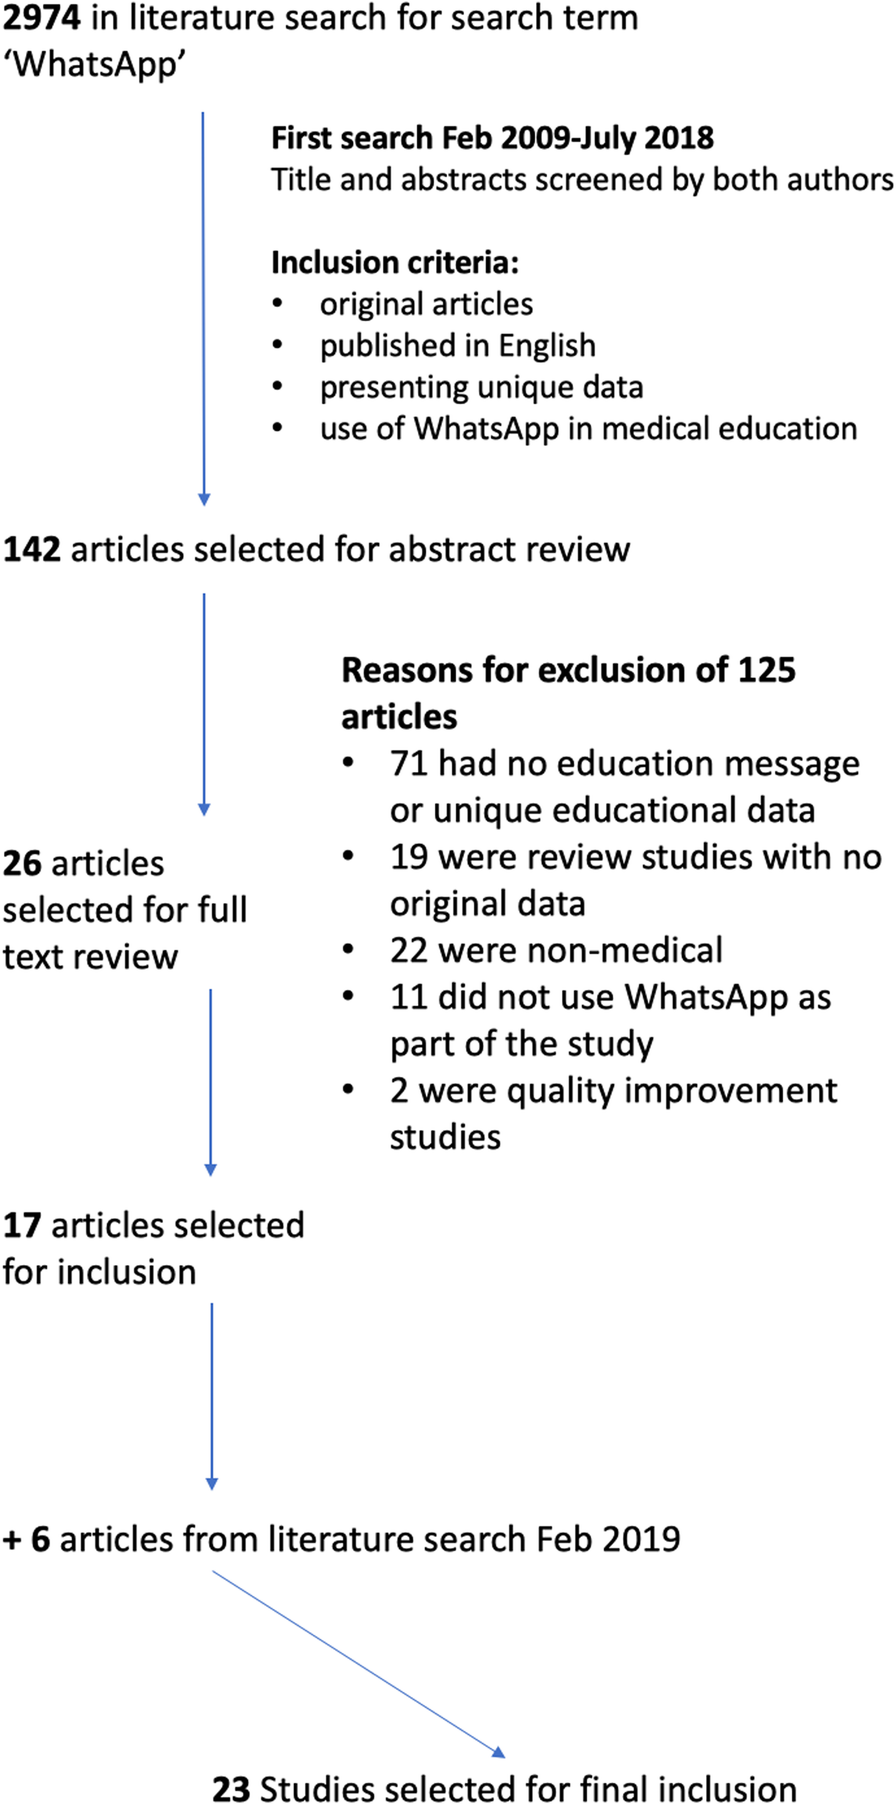 The role of WhatsApp® in medical education